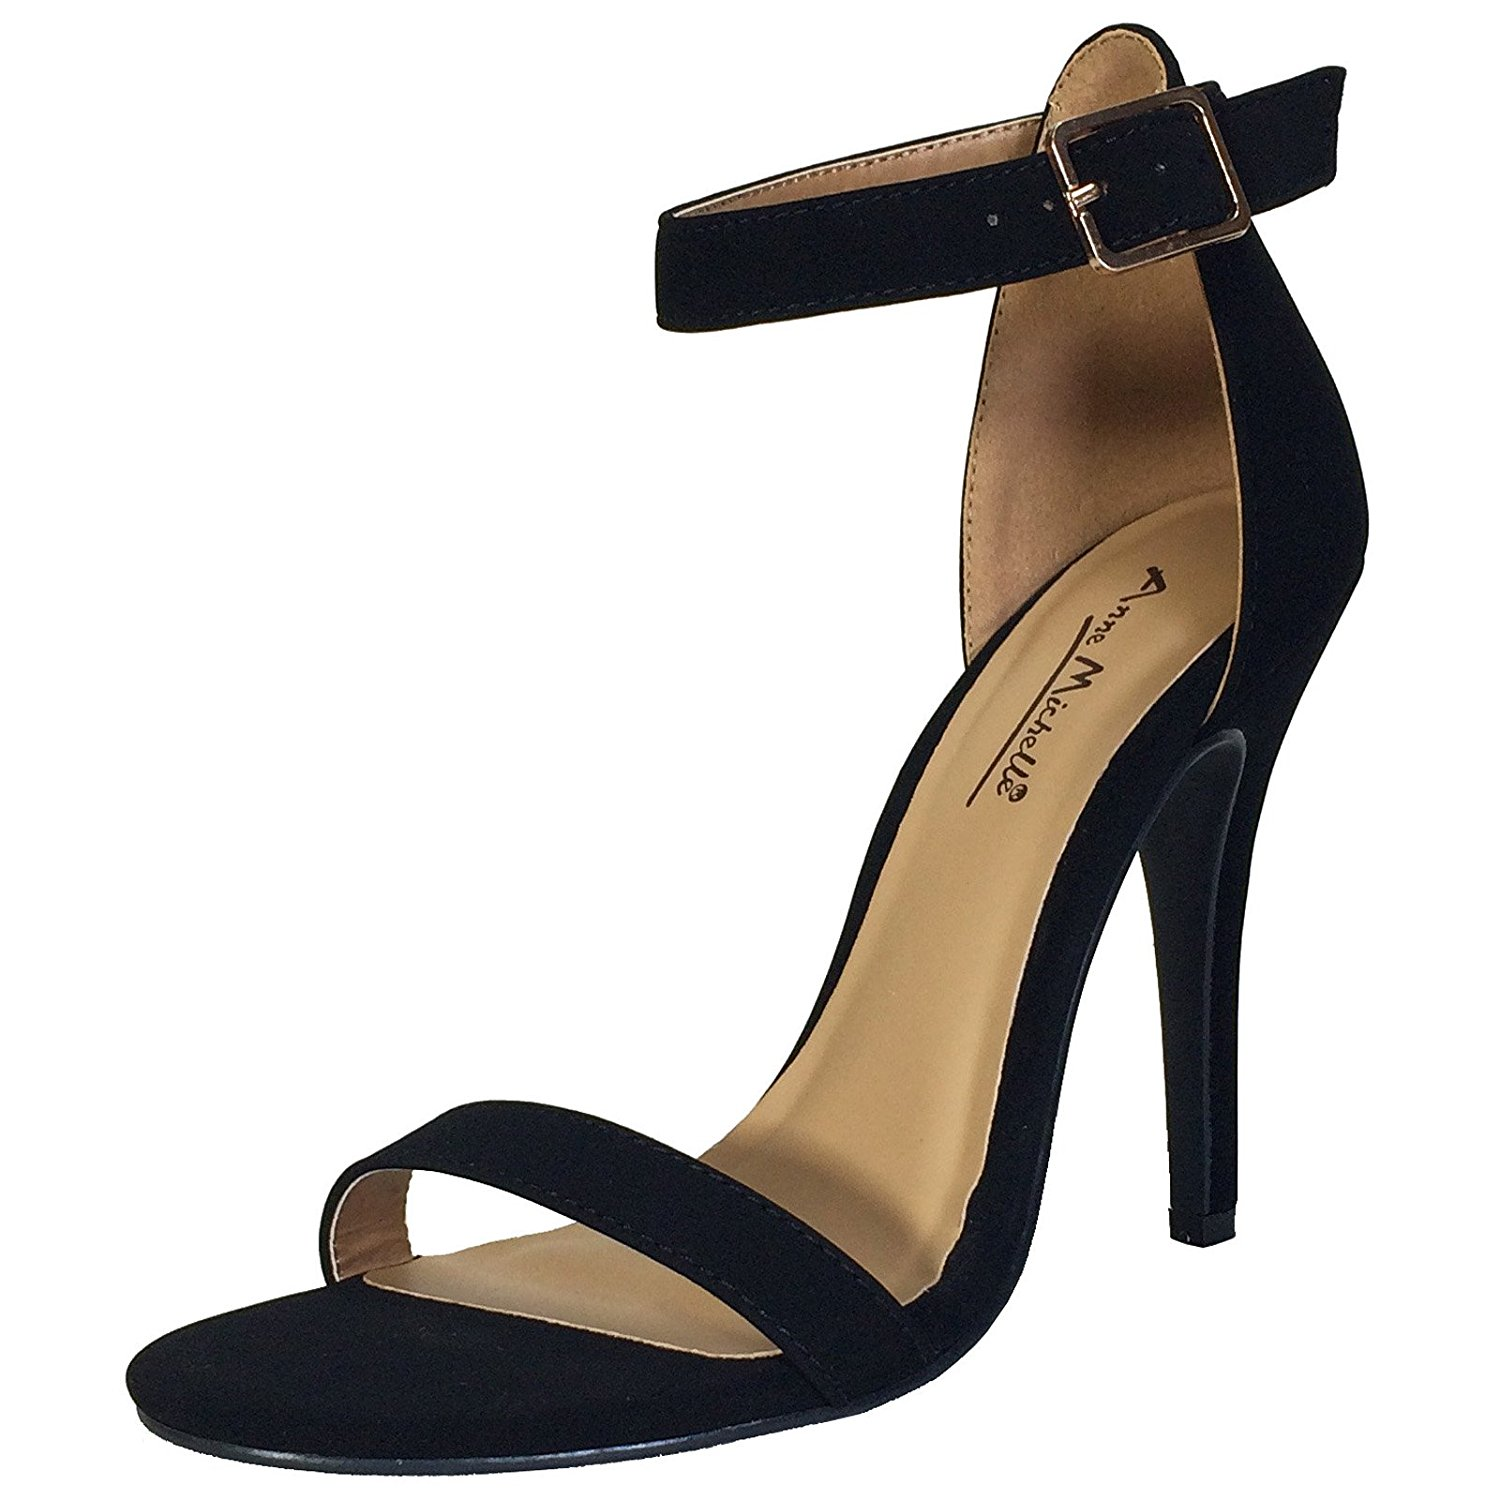 c3e6b409b Get Quotations · Anne Michelle Women's Single Band Dress Heel Sandal with Ankle  Strap